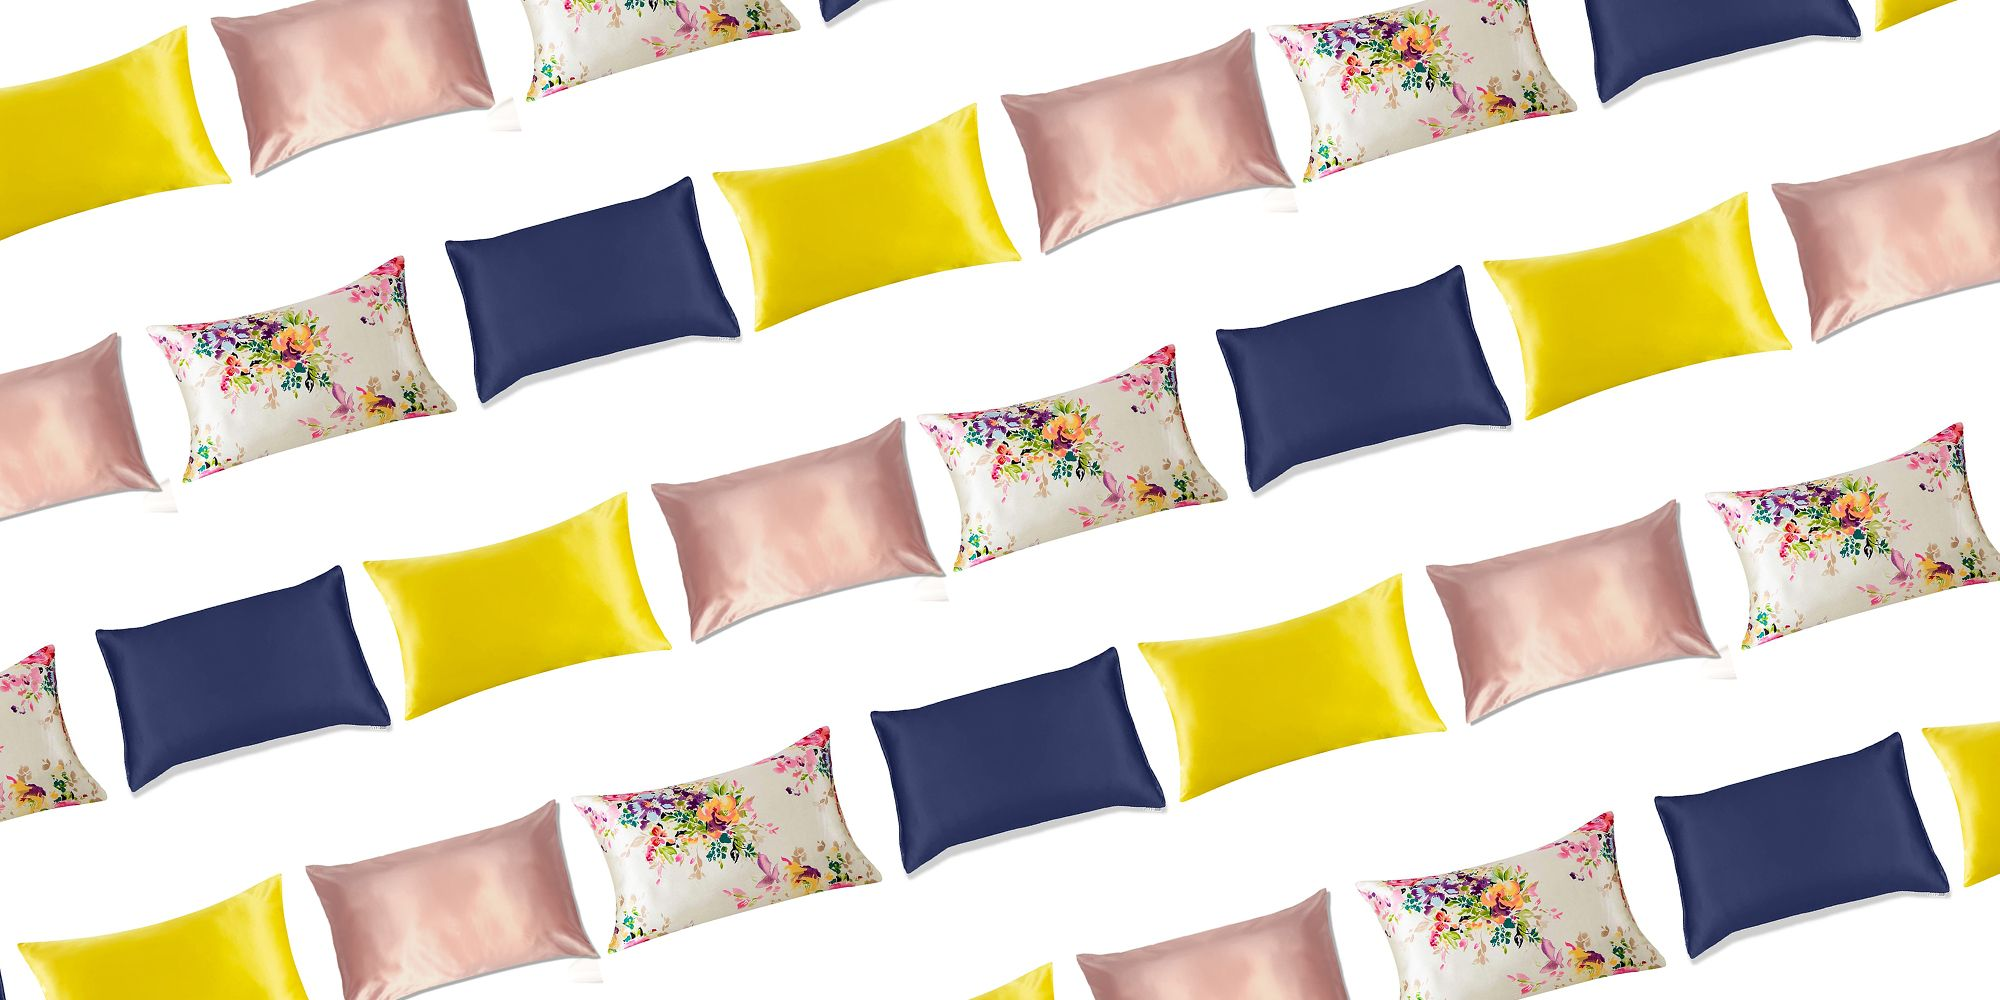 luxurious silk pillowcases for skin and